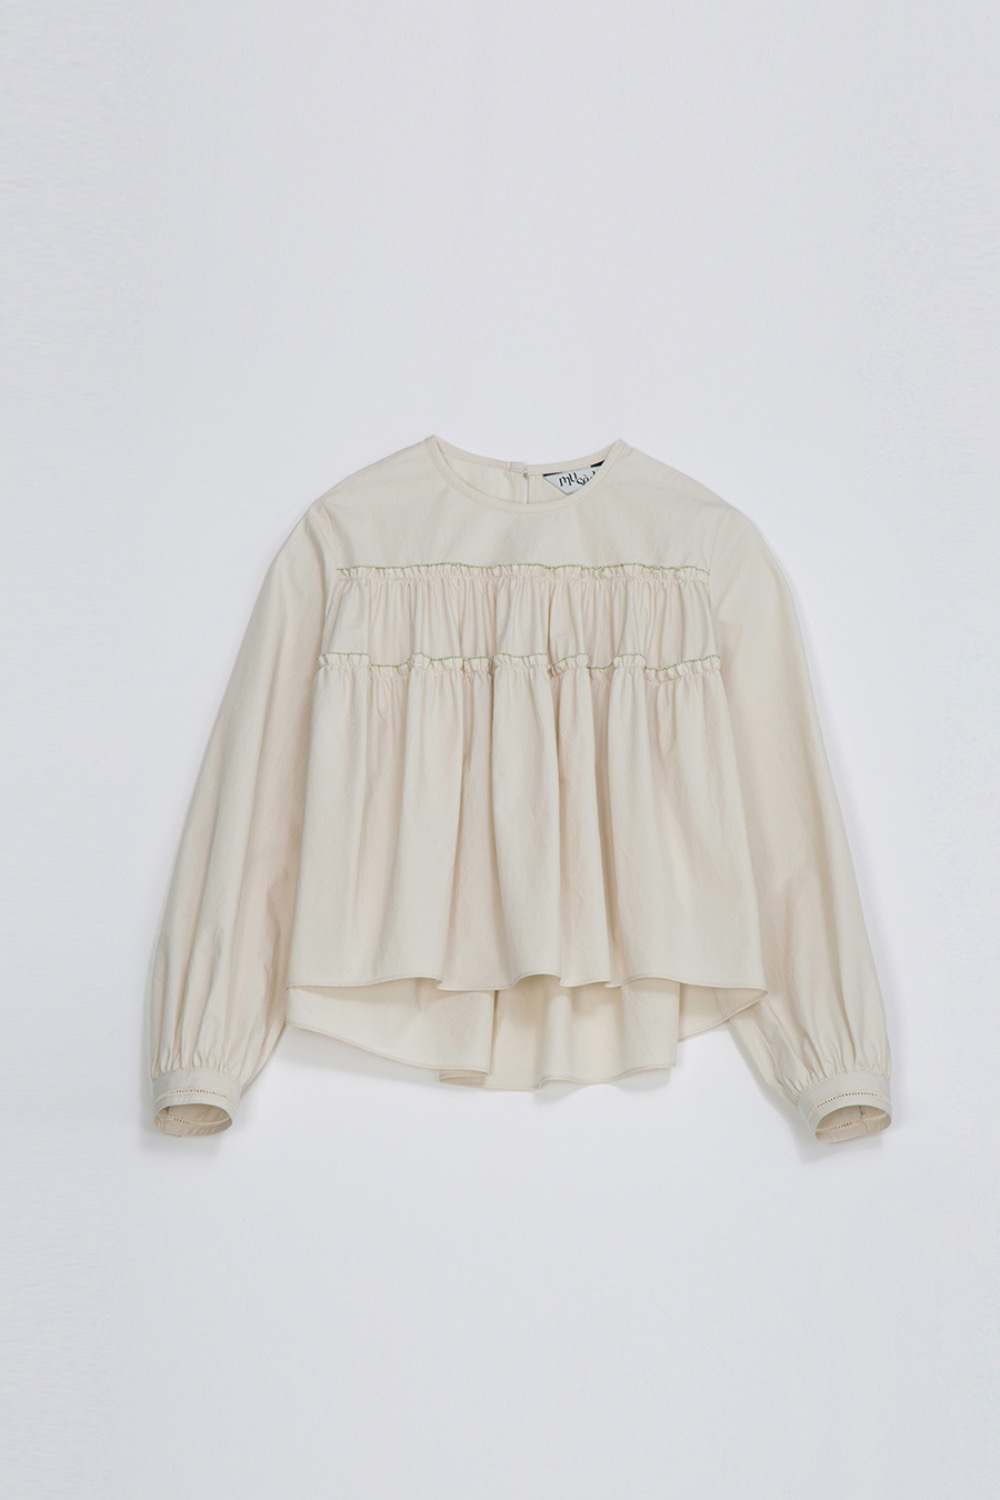 AGREABLE TIERD BLOUSE -IVORY COTTON